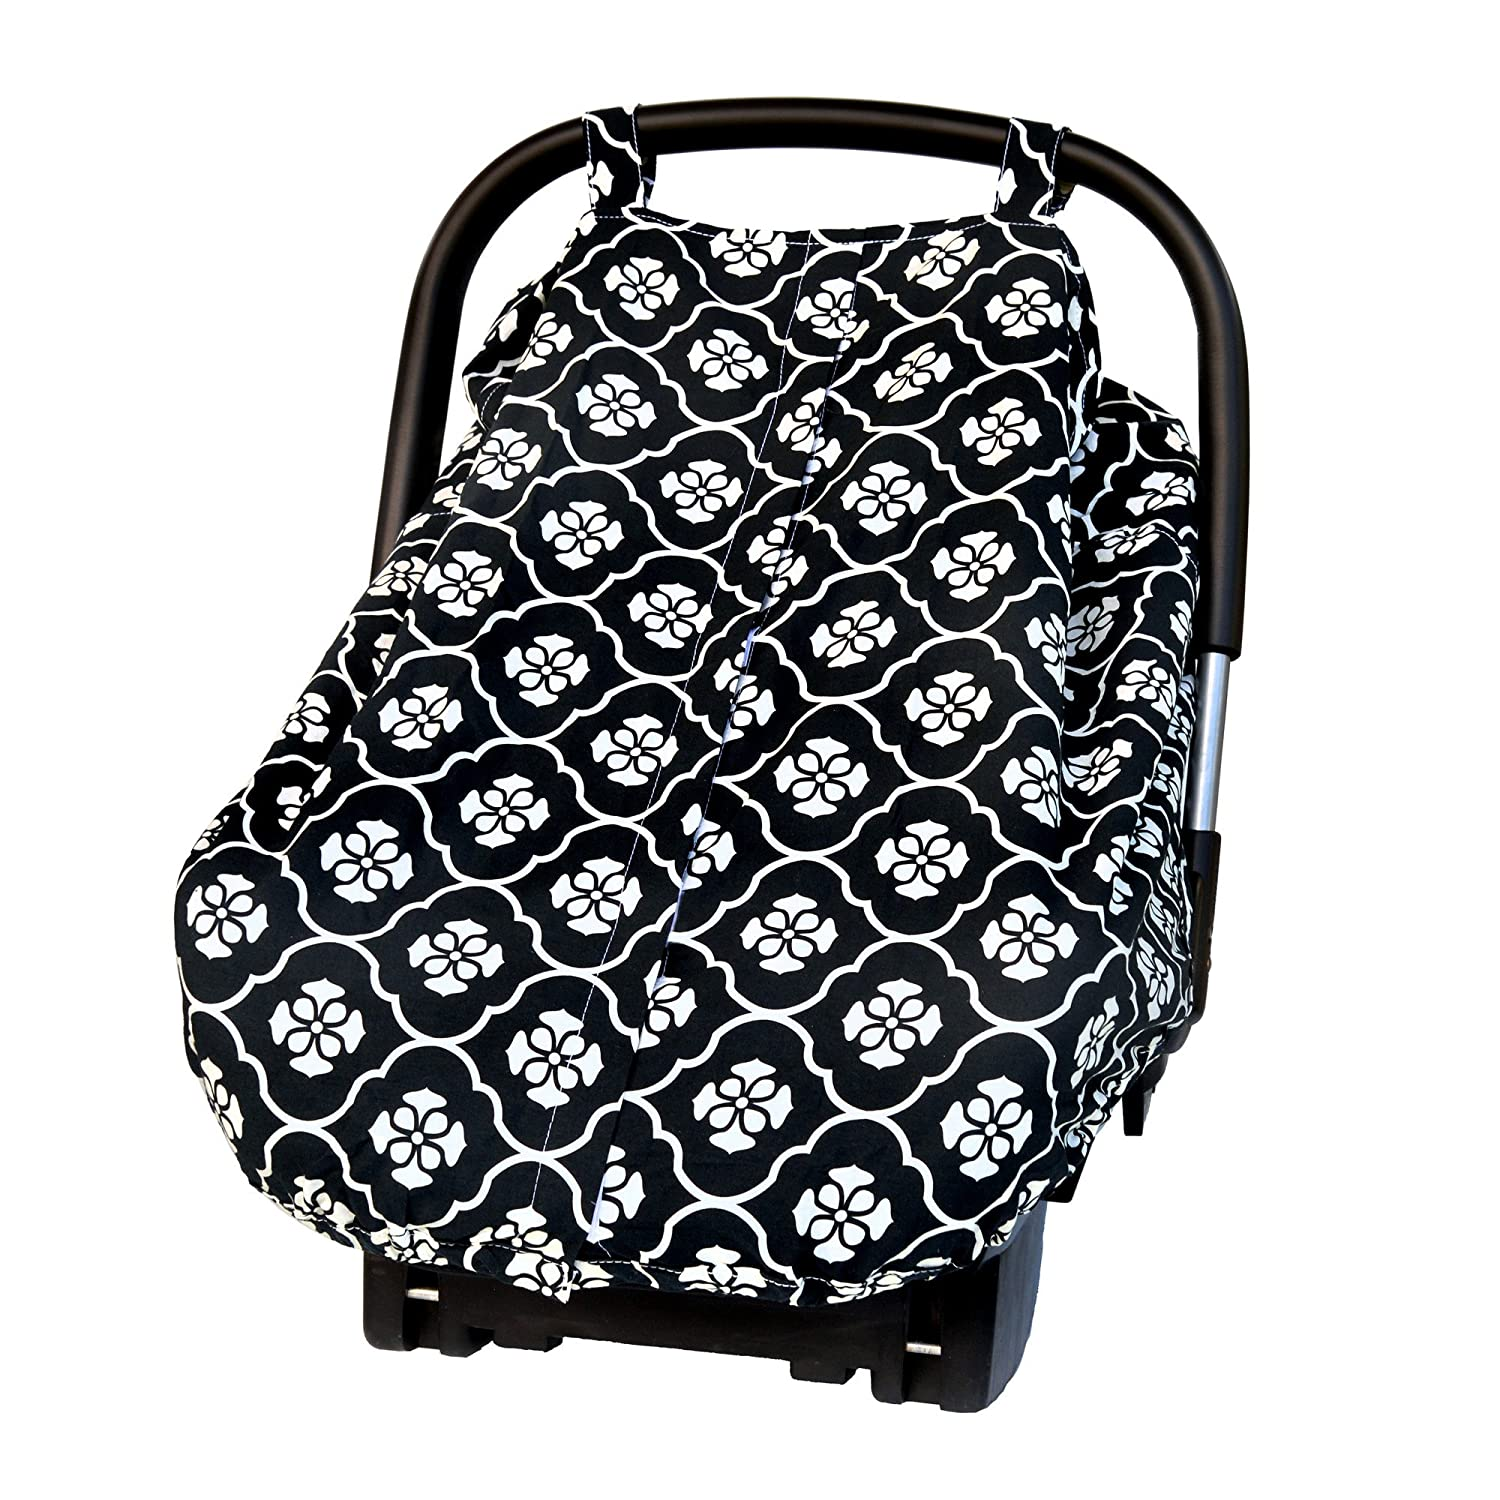 Jj Cole Car Seat Canopy, Black Floret J00537